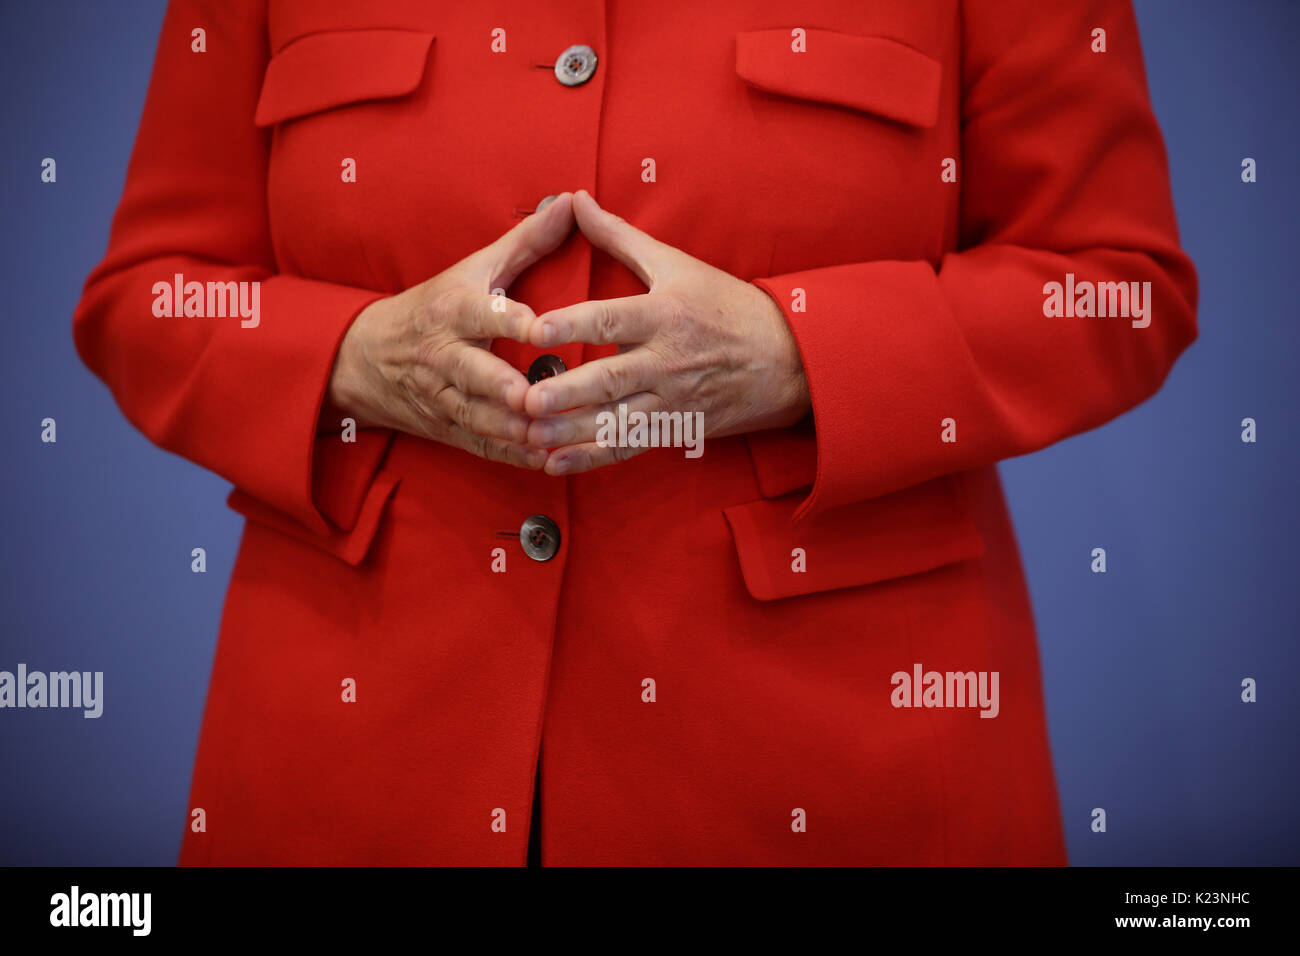 Berlin, Germany. 29th Aug, 2017. German Chancellor Angela Merkel (CDU) arrives at the summer press conference at the federal press conference ('Bundespressekonferenz') in Berlin, Germany, 29 August 2017. Photo: Michael Kappeler/dpa/Alamy Live News - Stock Image